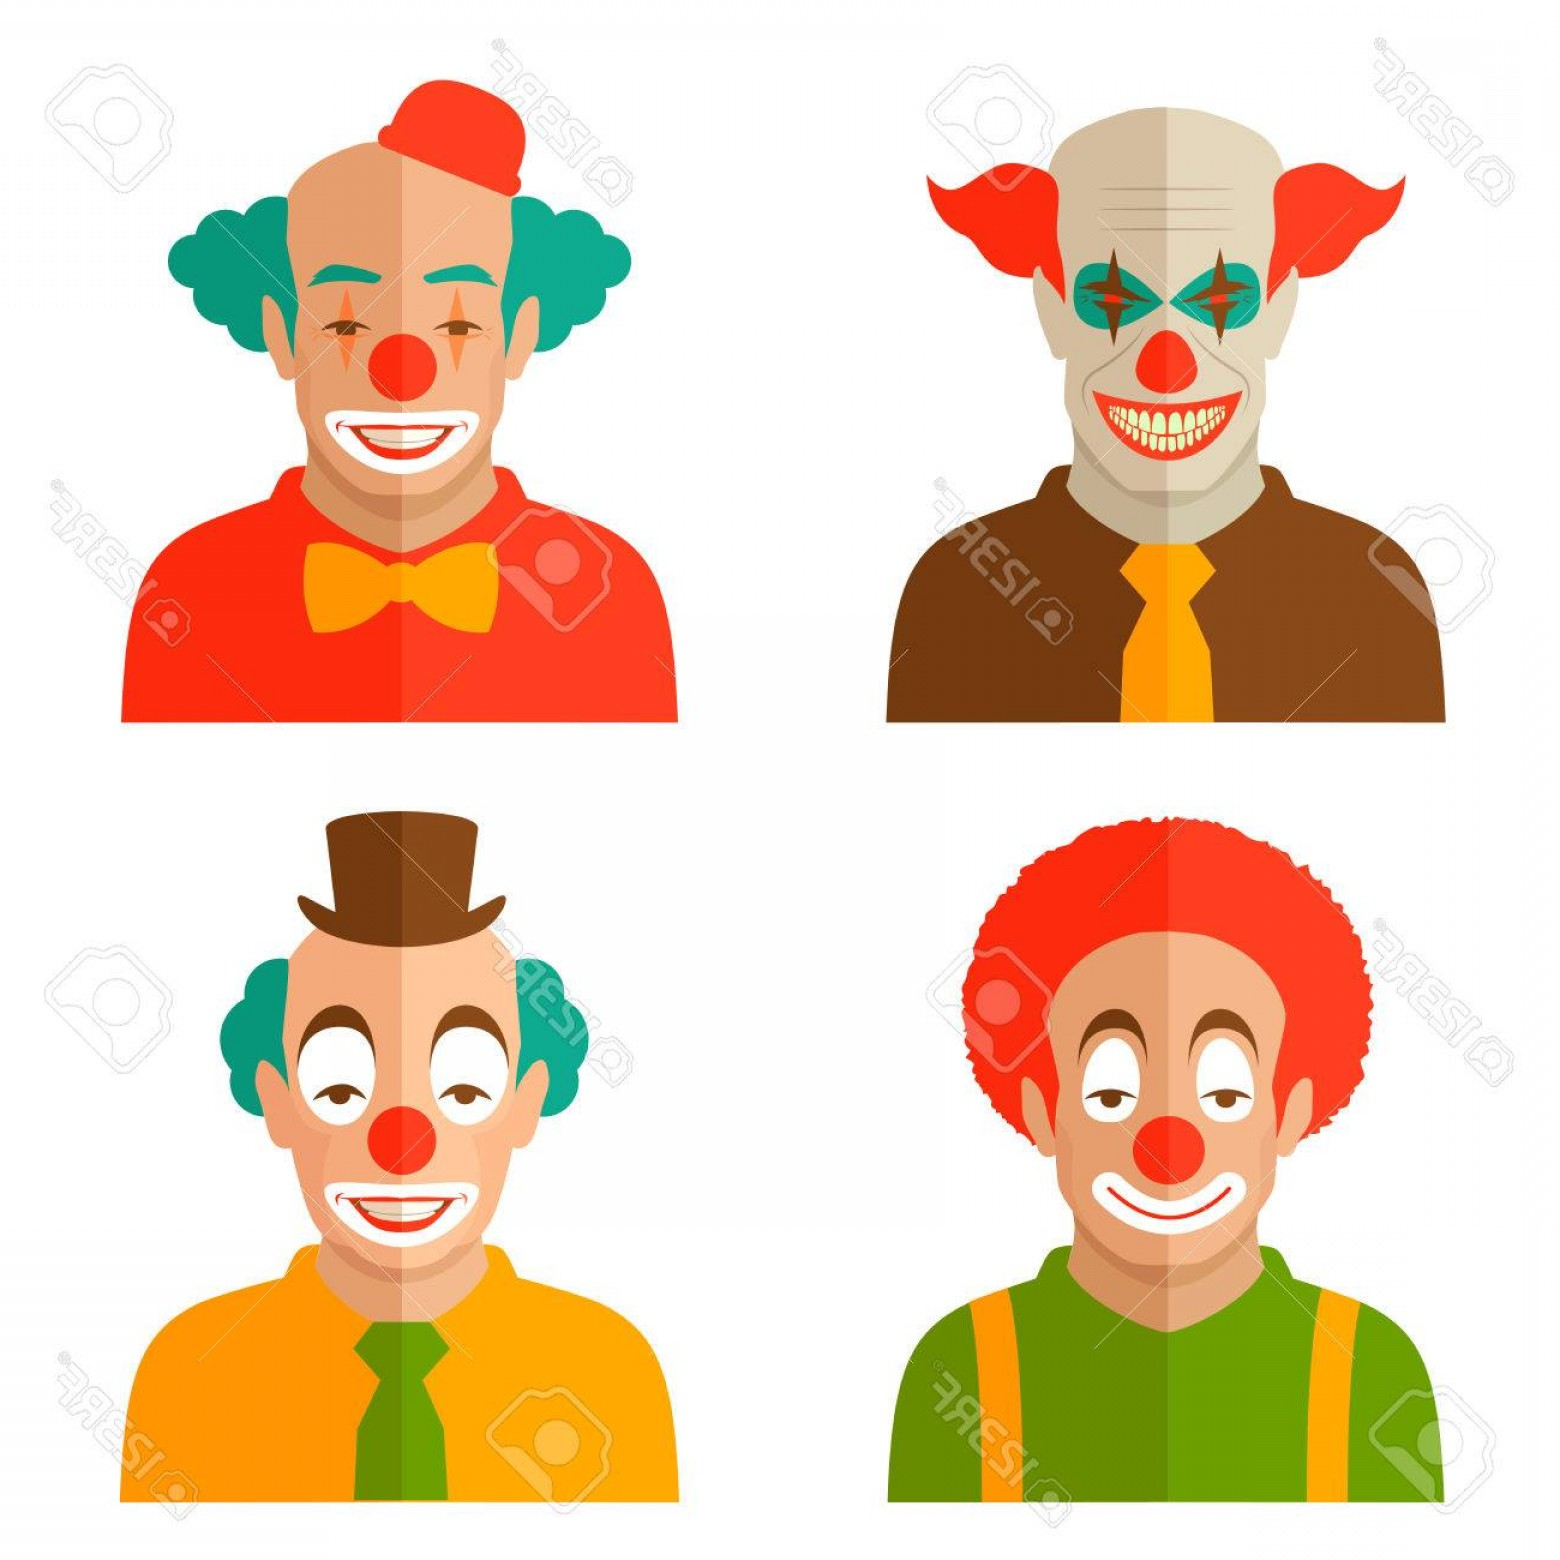 Joker Smile Vector Art: Photostock Vector Funny Cartoon Clown Face Illustration Circus Scary Joker Smile